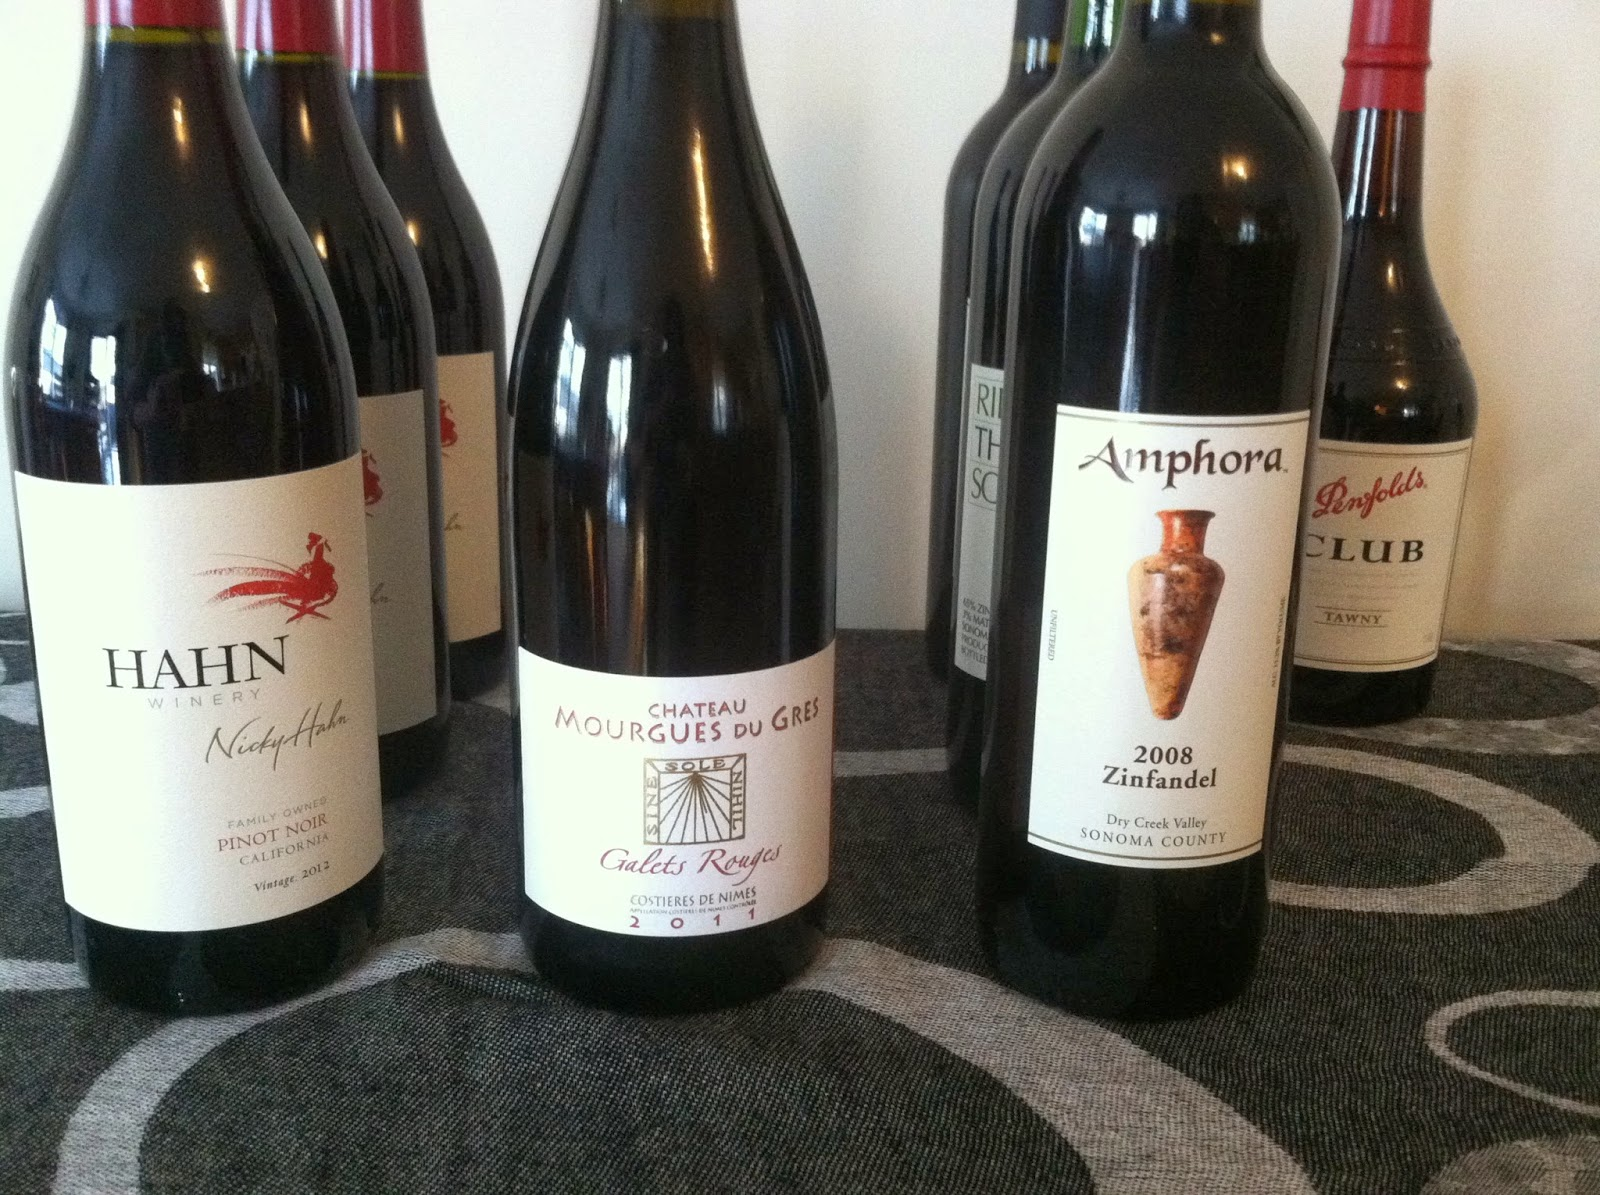 Hahn Pinot Noir and Ampora Zinfandel featured in recent Cooking Chat pairings. #wine